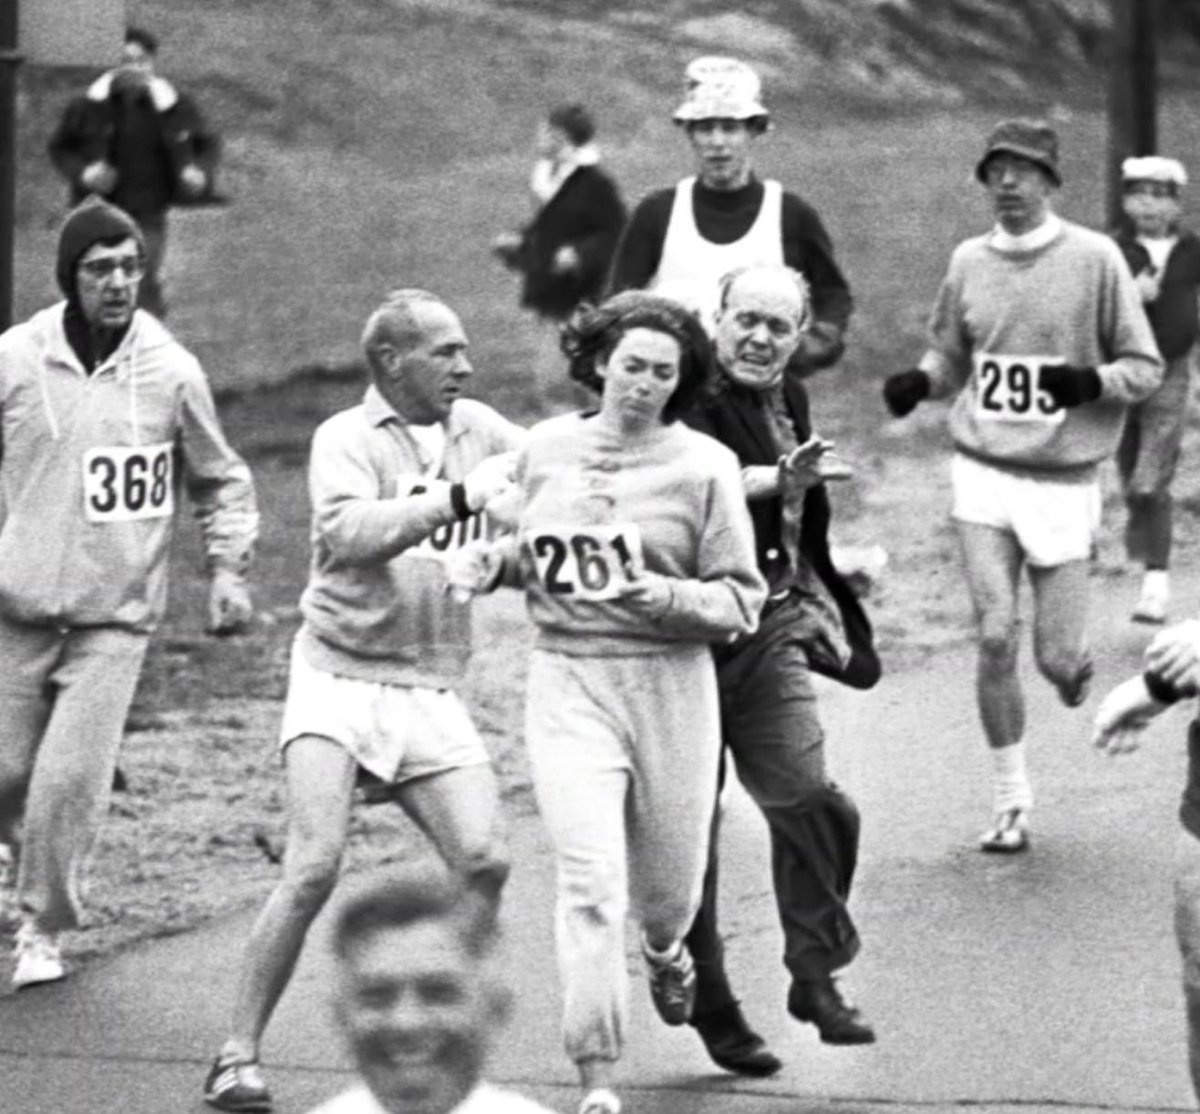 52 years ago, Kathrine Switzer became the 1st woman to officially run the #BostonMarathon, despite the race director trying to get her off the course. <br>http://pic.twitter.com/ih2ctkL8jl